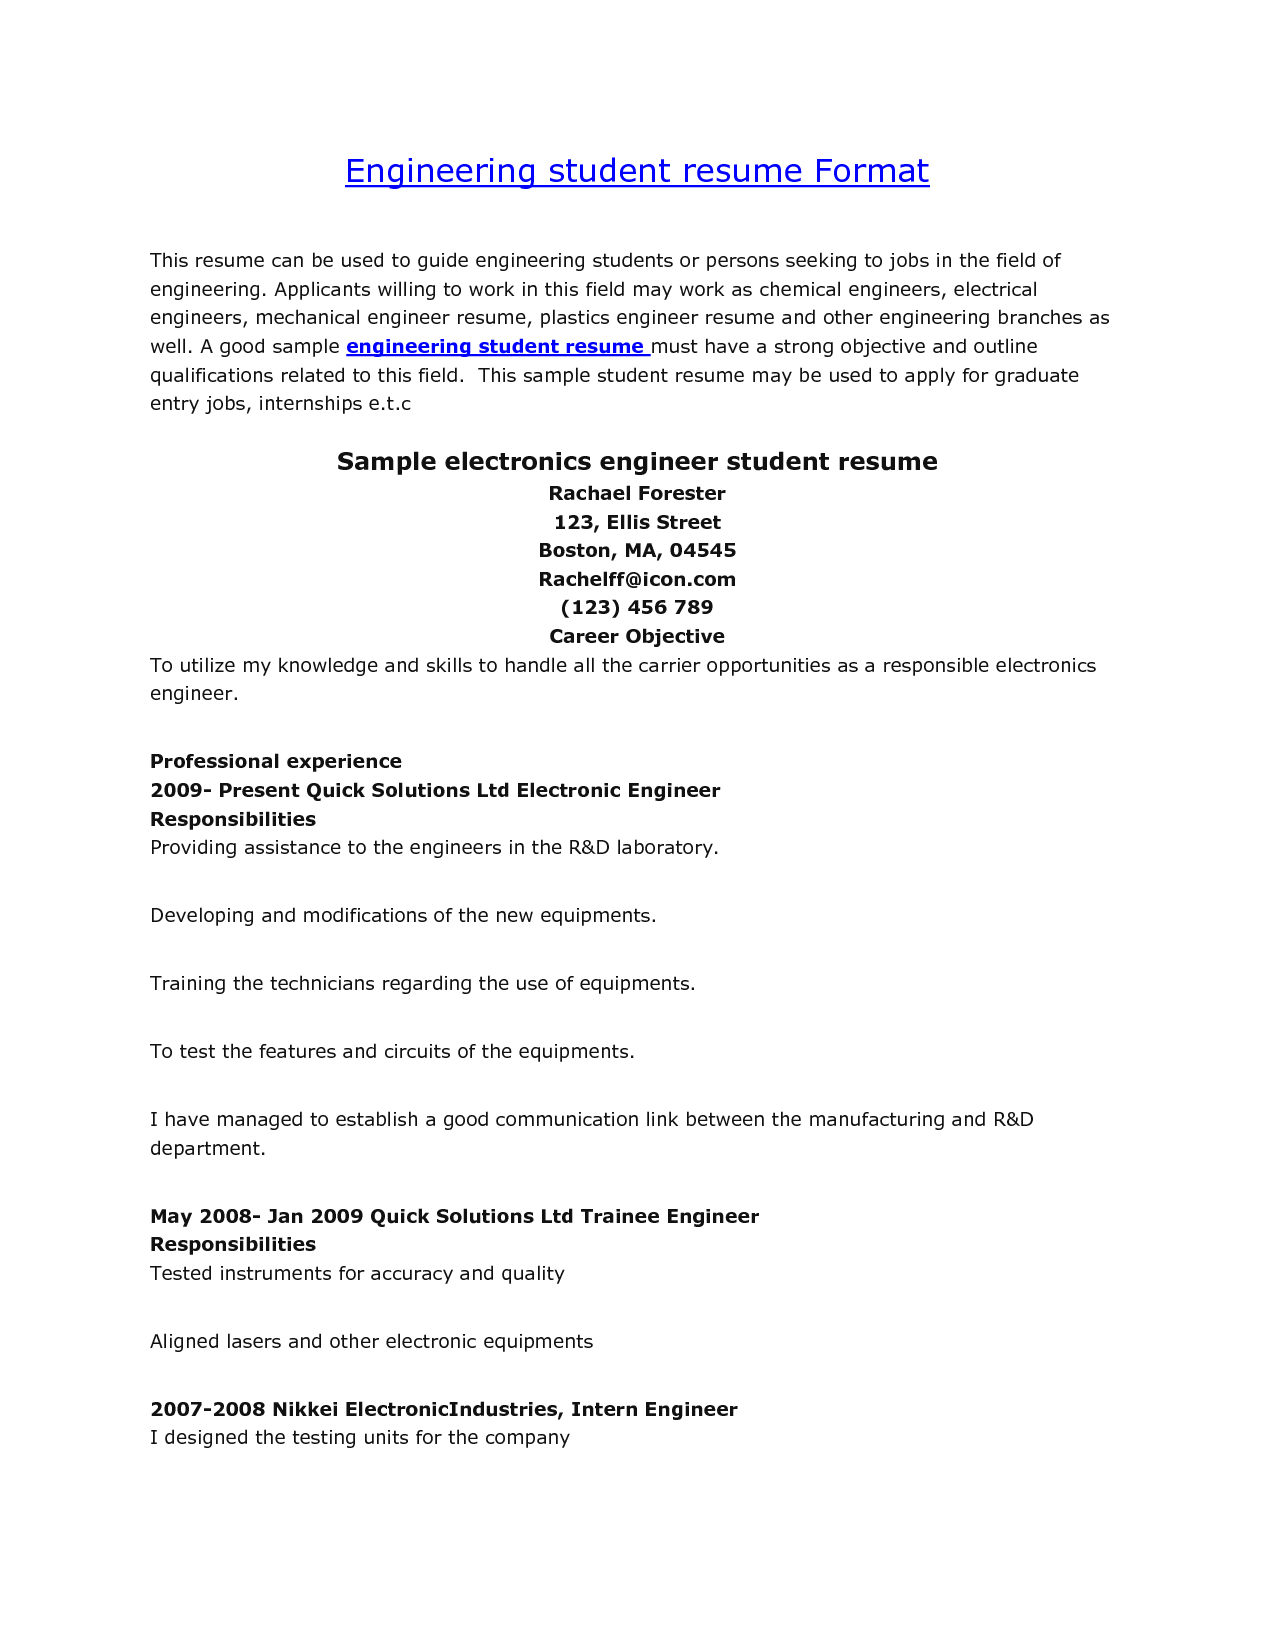 Internship Resume Template Microsoft Word Resume Format For Engineering Students  Httpwwwjobresume